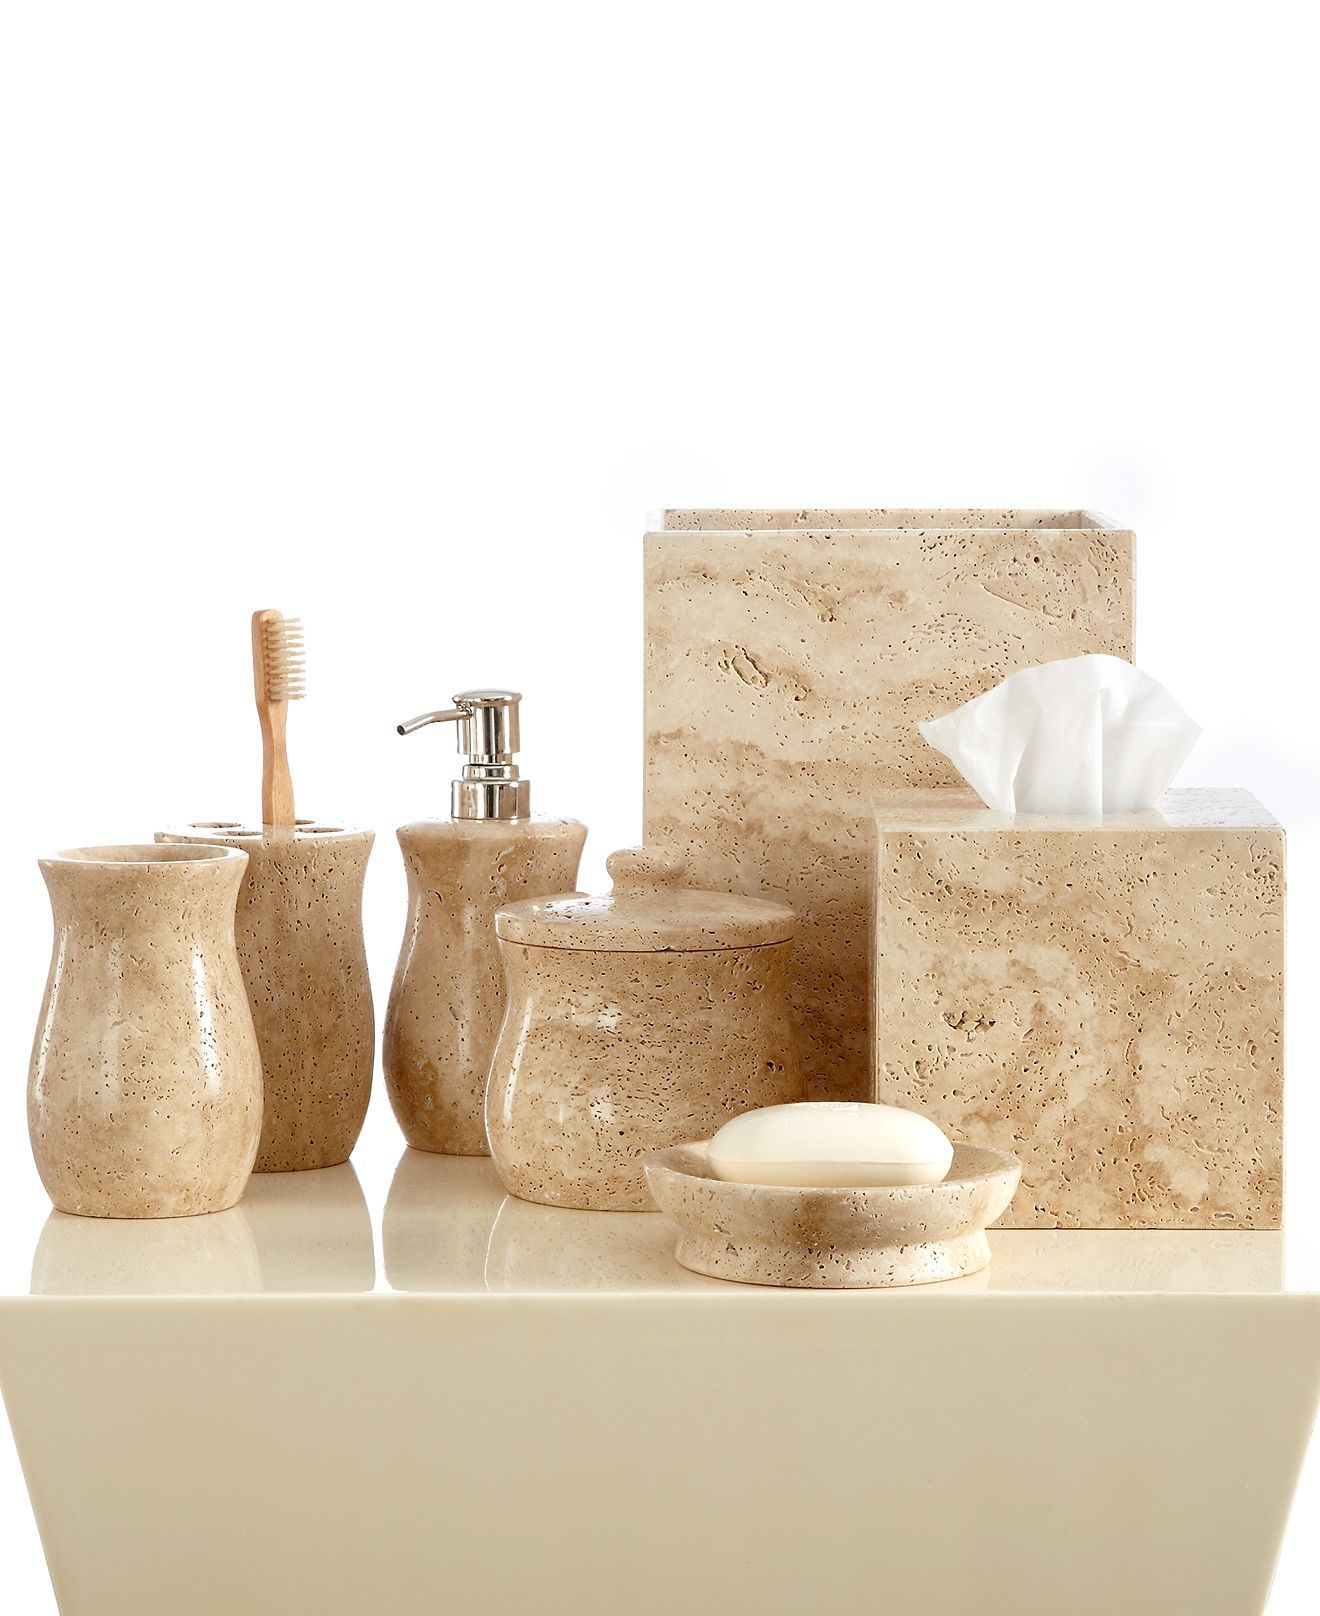 Roselli Bath Accessories, Travertine Collection | hmby 3 | Pinterest ...